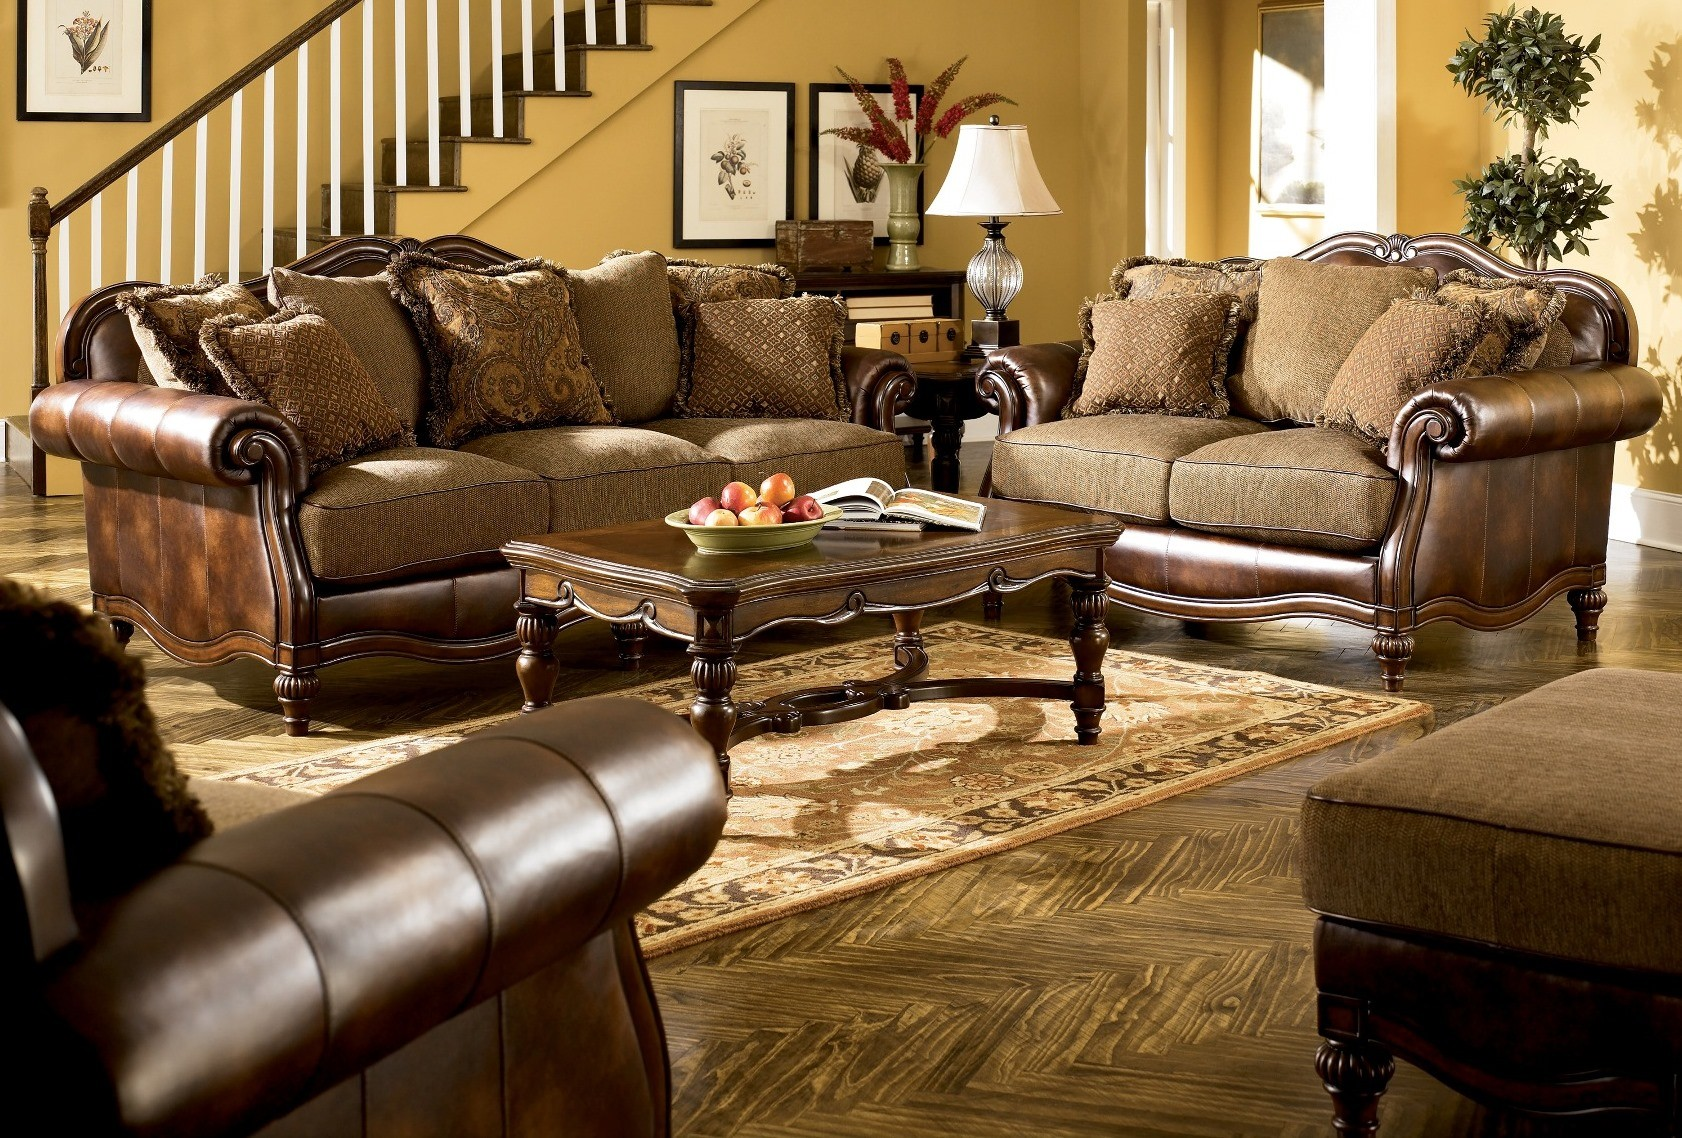 Claremore Antique Living Room Set From Ashley 84303 Coleman Furniture